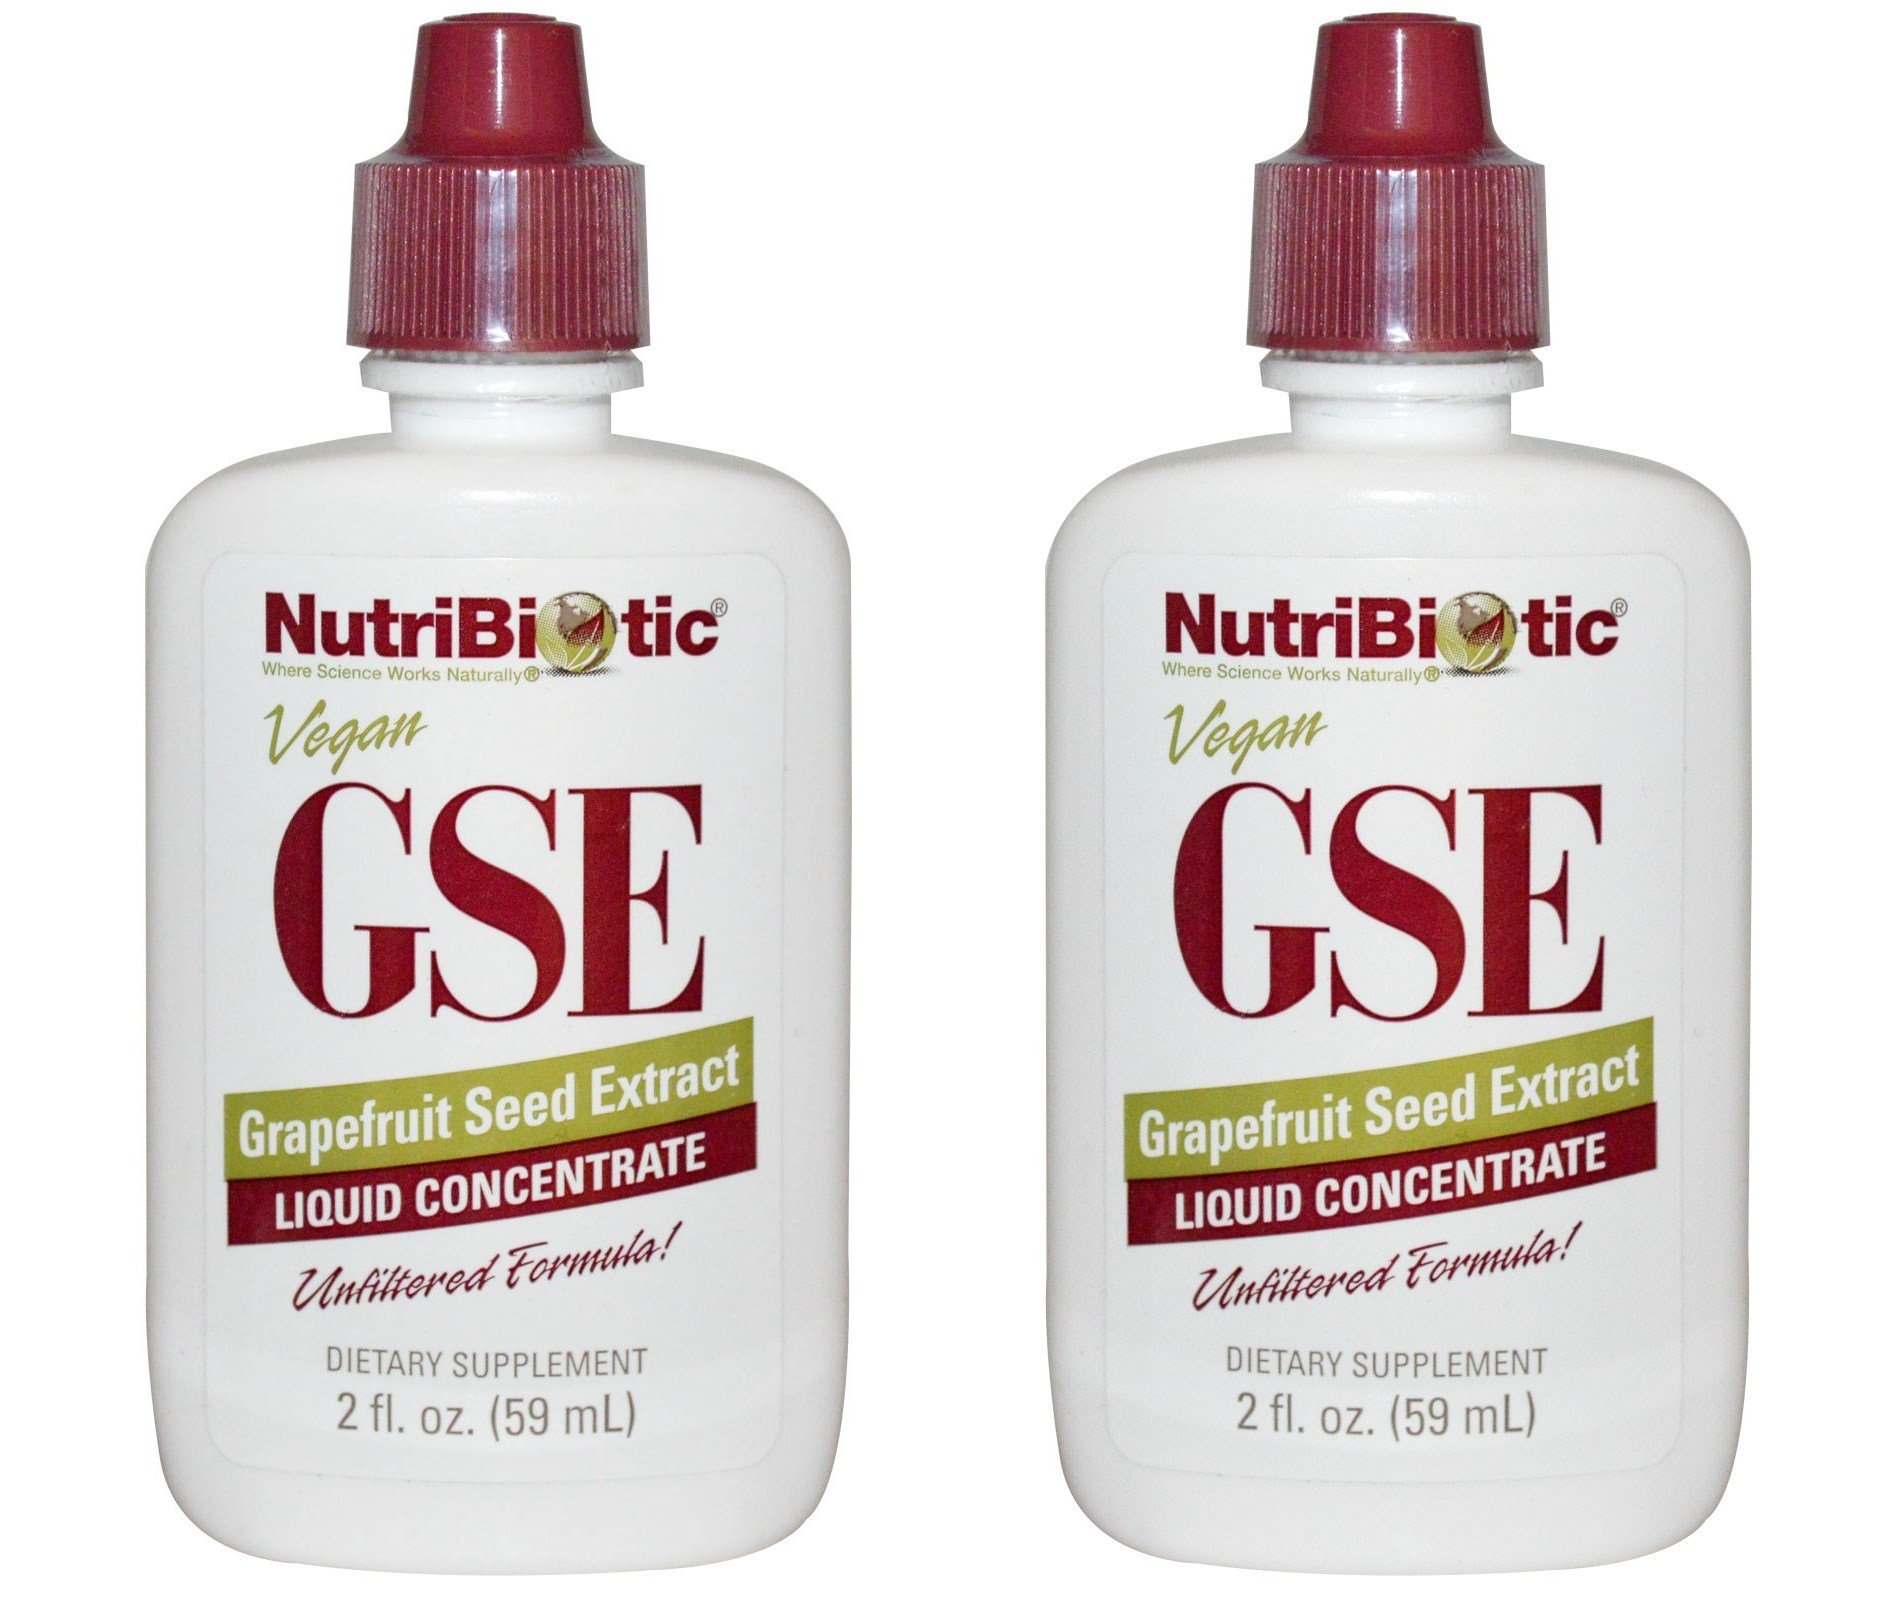 NutriBiotic Grapefruit Seed Extract Liquid Concentrate (Pack of 2) Featuring Unfiltered Formula Rich with Bioflavonoids, Vegan, Gluten Free and Made Without GMOs, 2 oz.